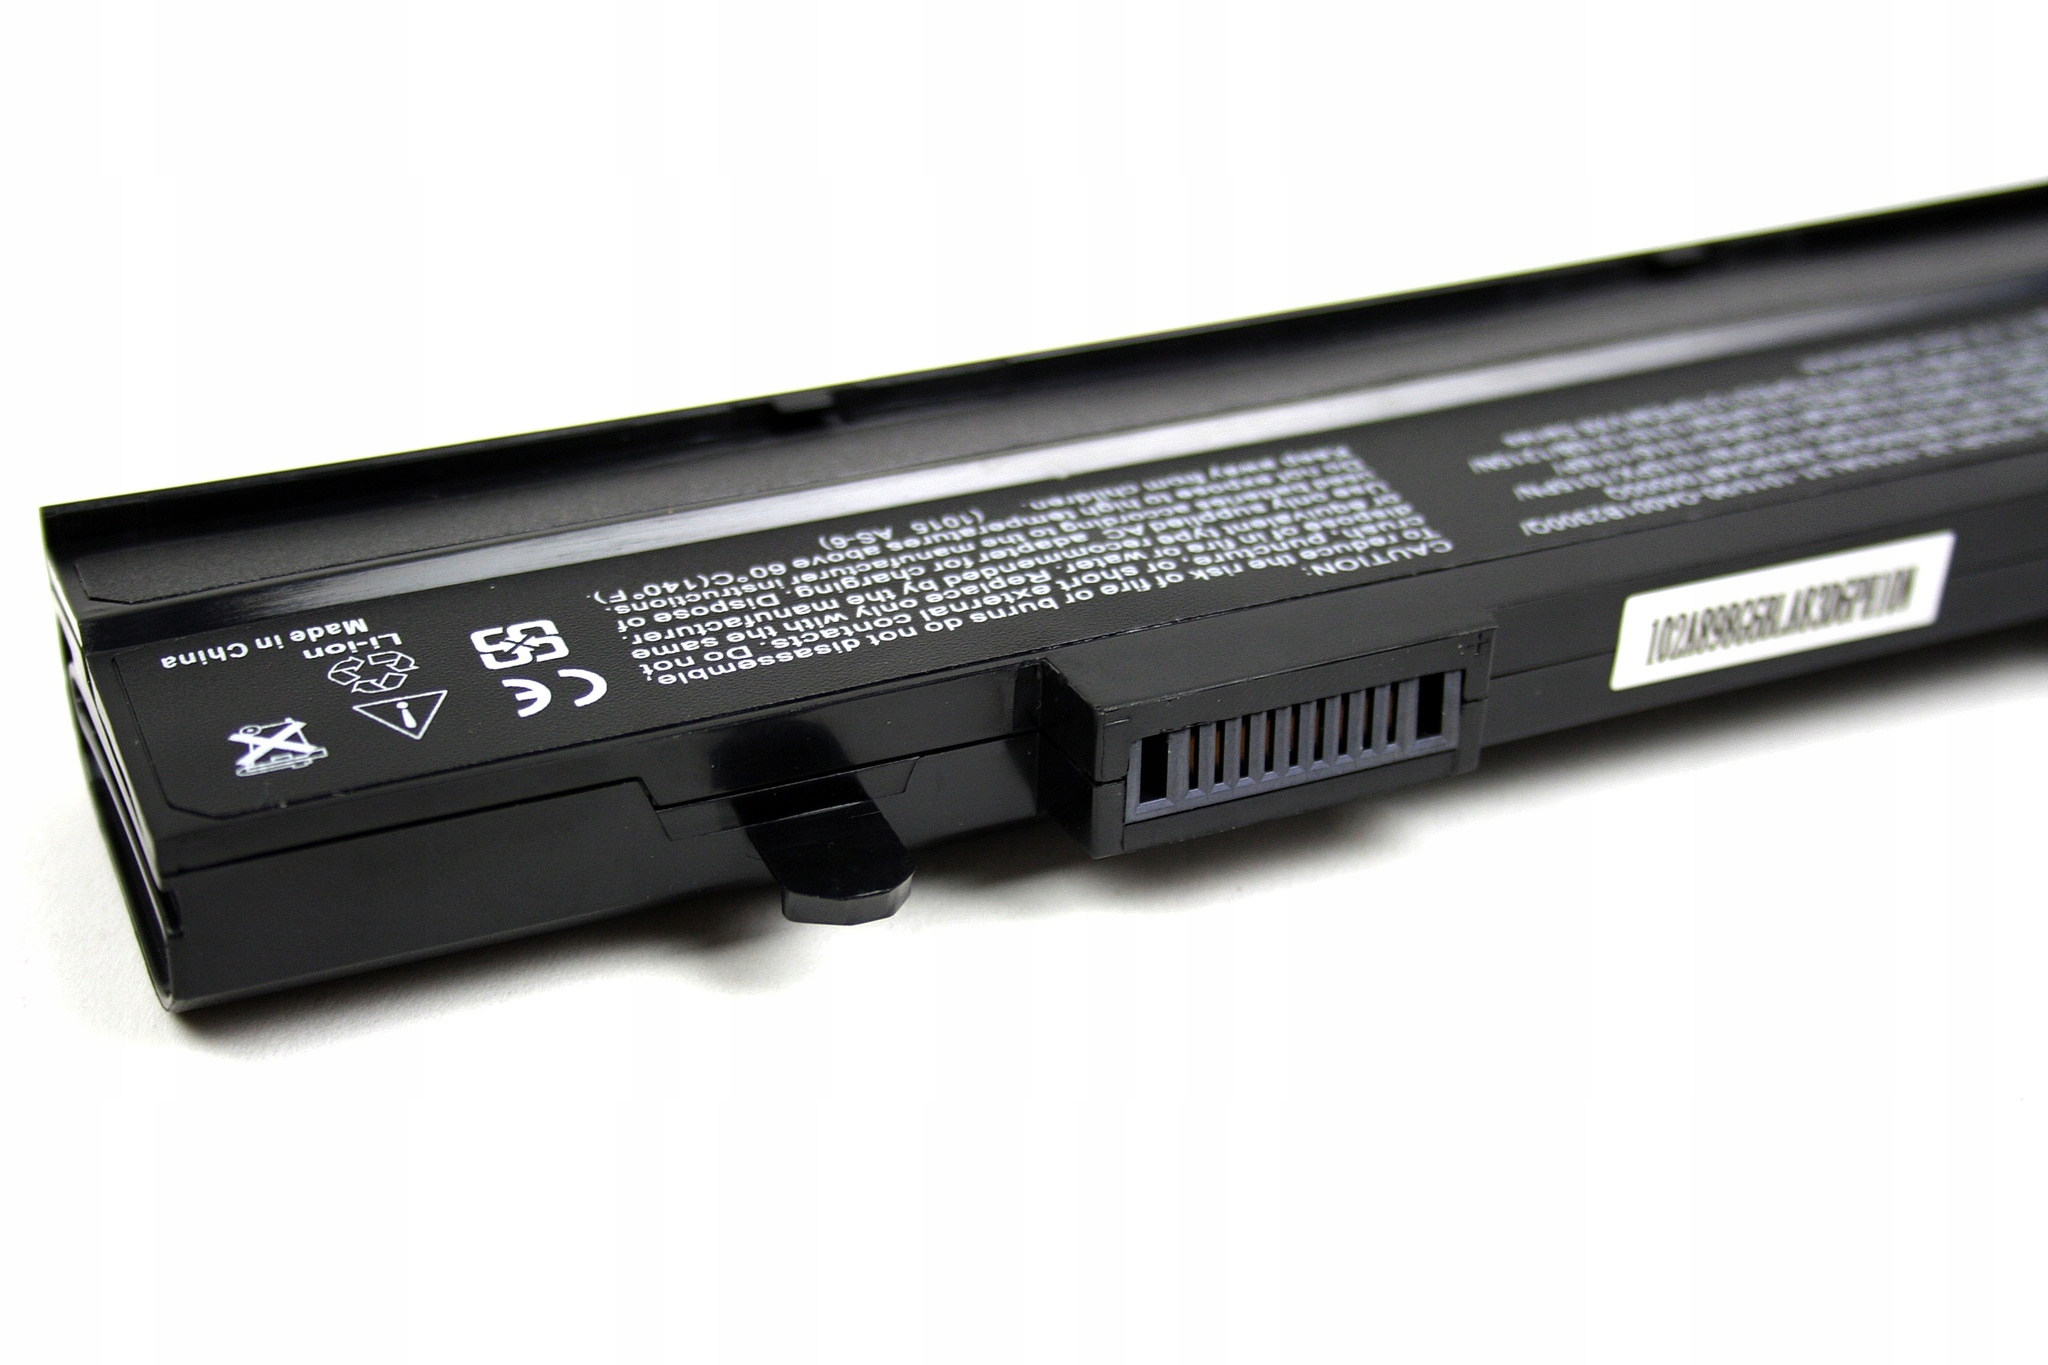 BATERIA AKUMULATOR ASUS EEE PC 1015PN 1215B 1215N A32-1015 - Baterie do laptopów